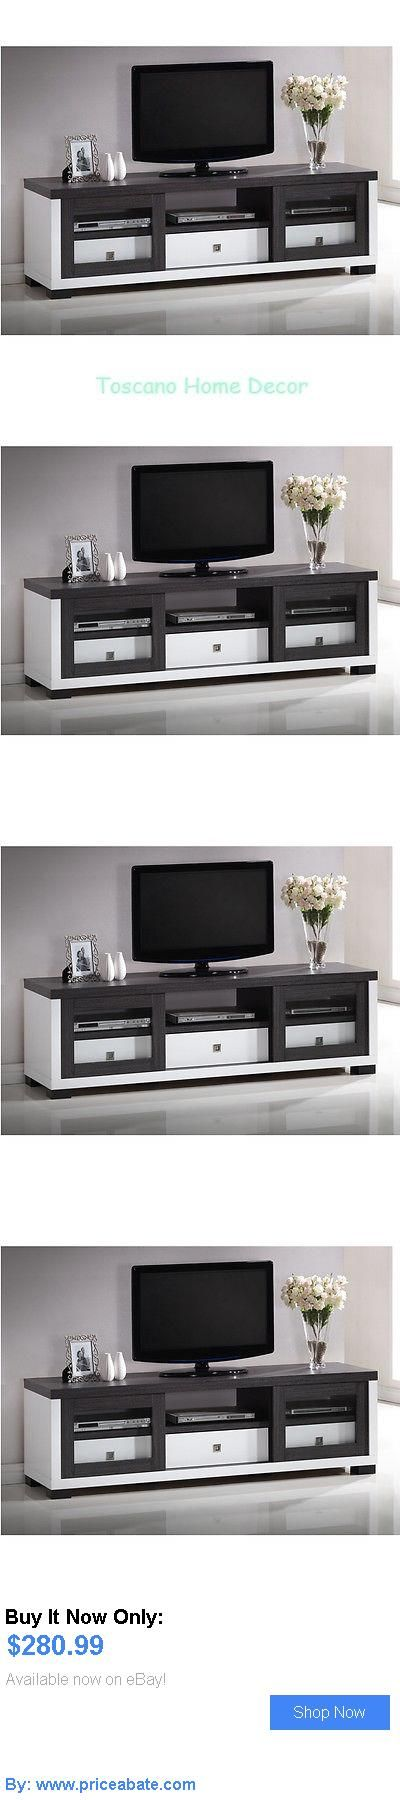 Entertainment Units, TV Stands: Tv Entertainment Center Modern Stand Furniture Storage Cabinet White Console New BUY IT NOW ONLY: $280.99 #priceabateEntertainmentUnitsTVStands OR #priceabate